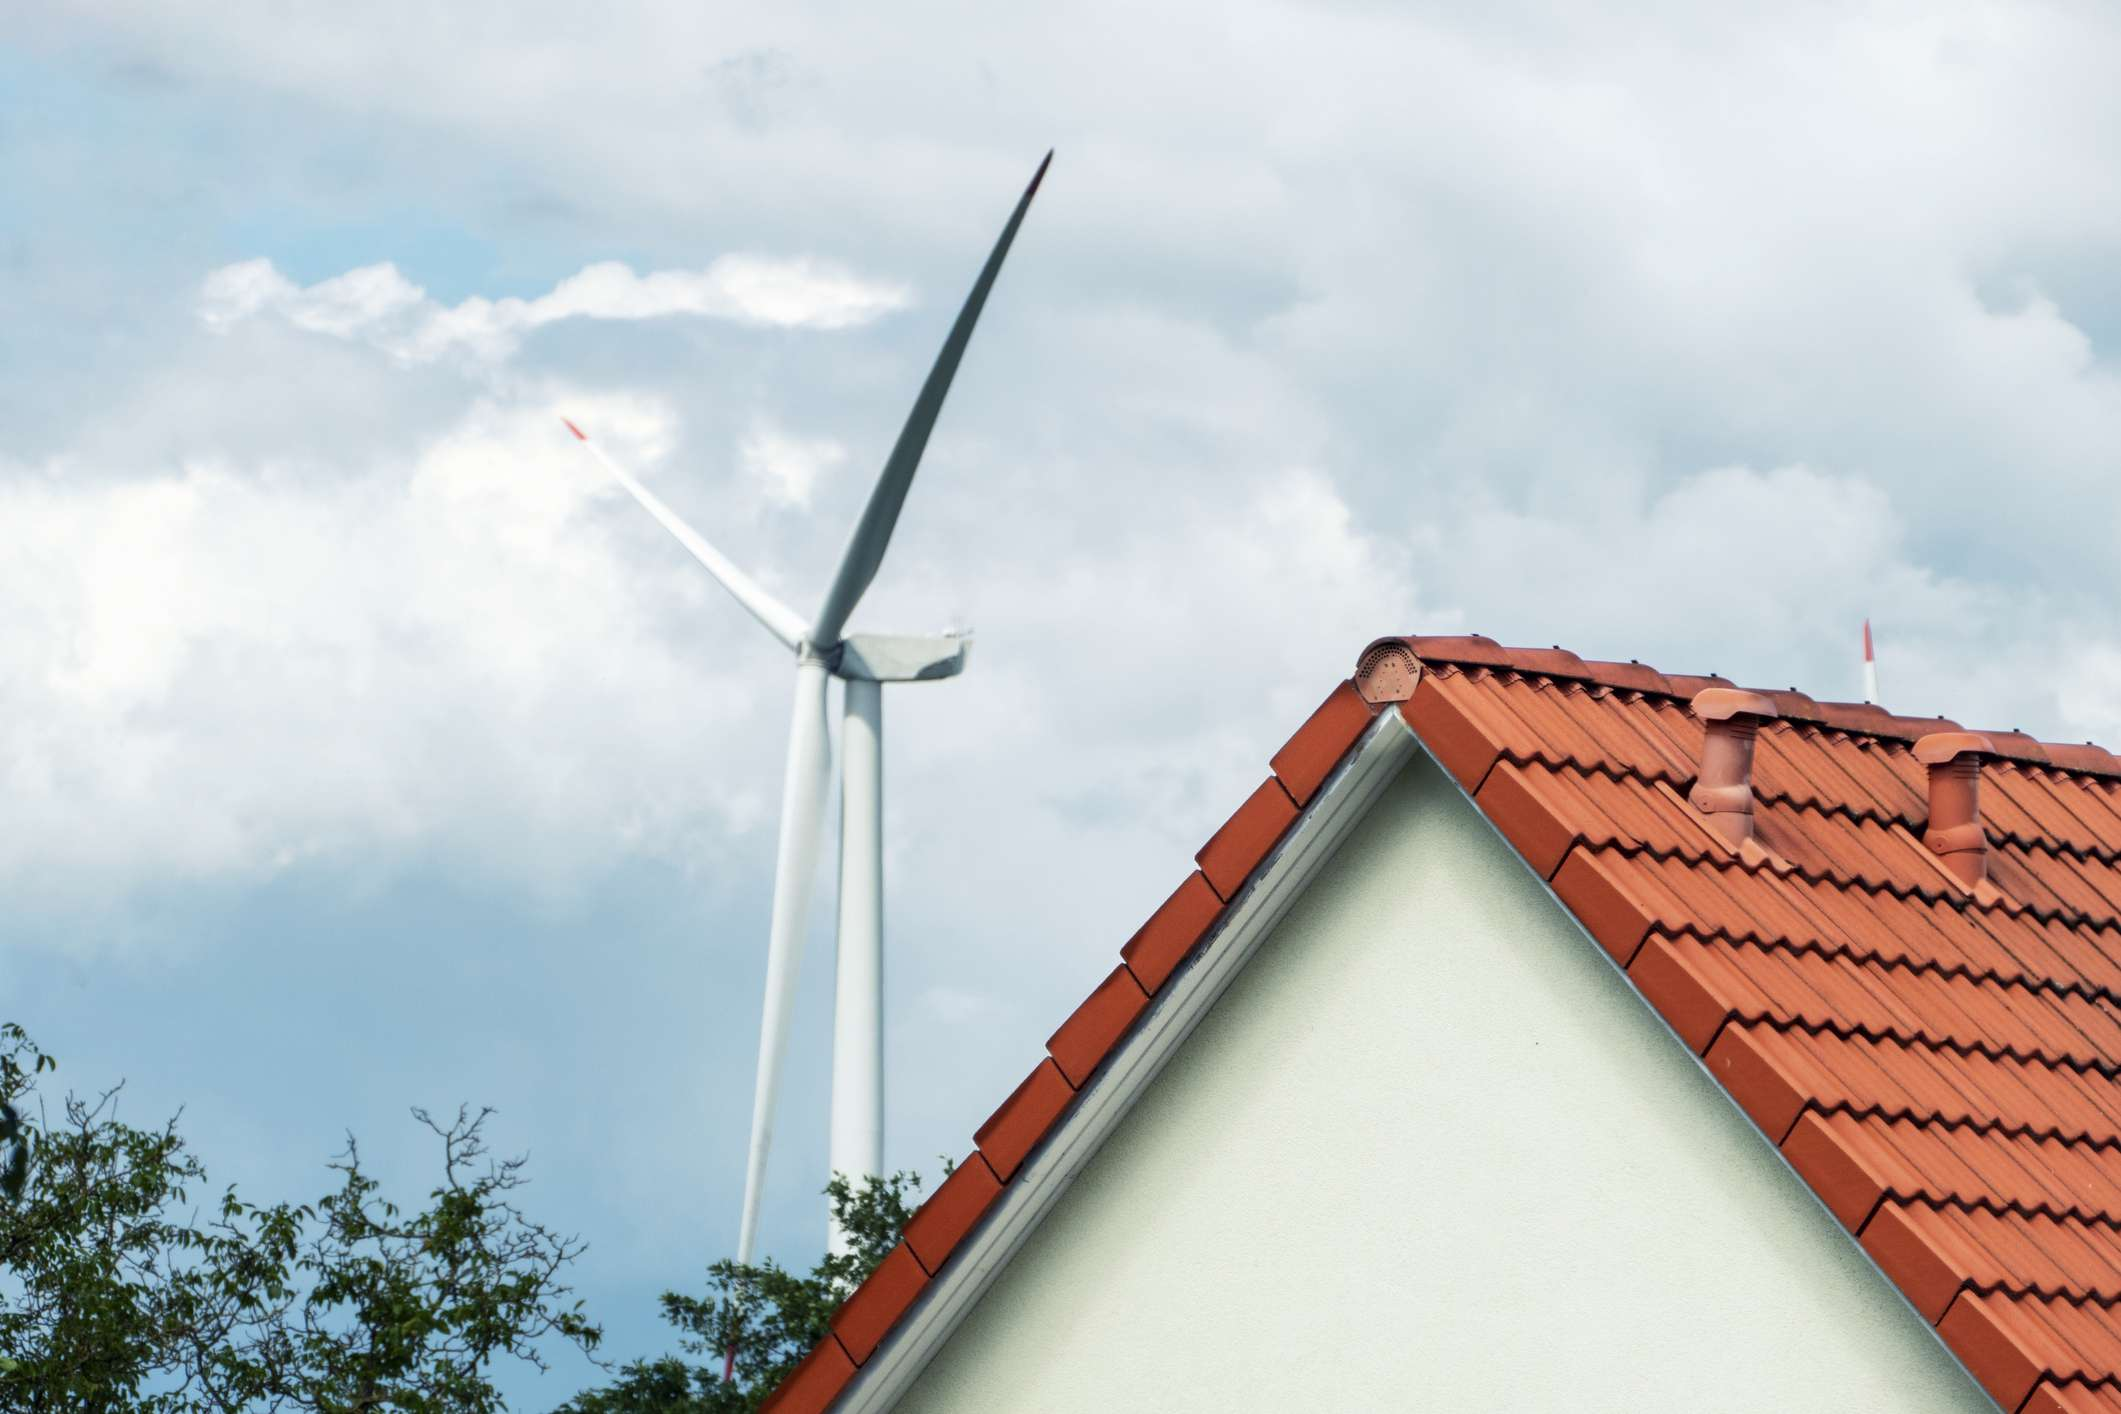 Wind turbine rising above trees and roof of a house